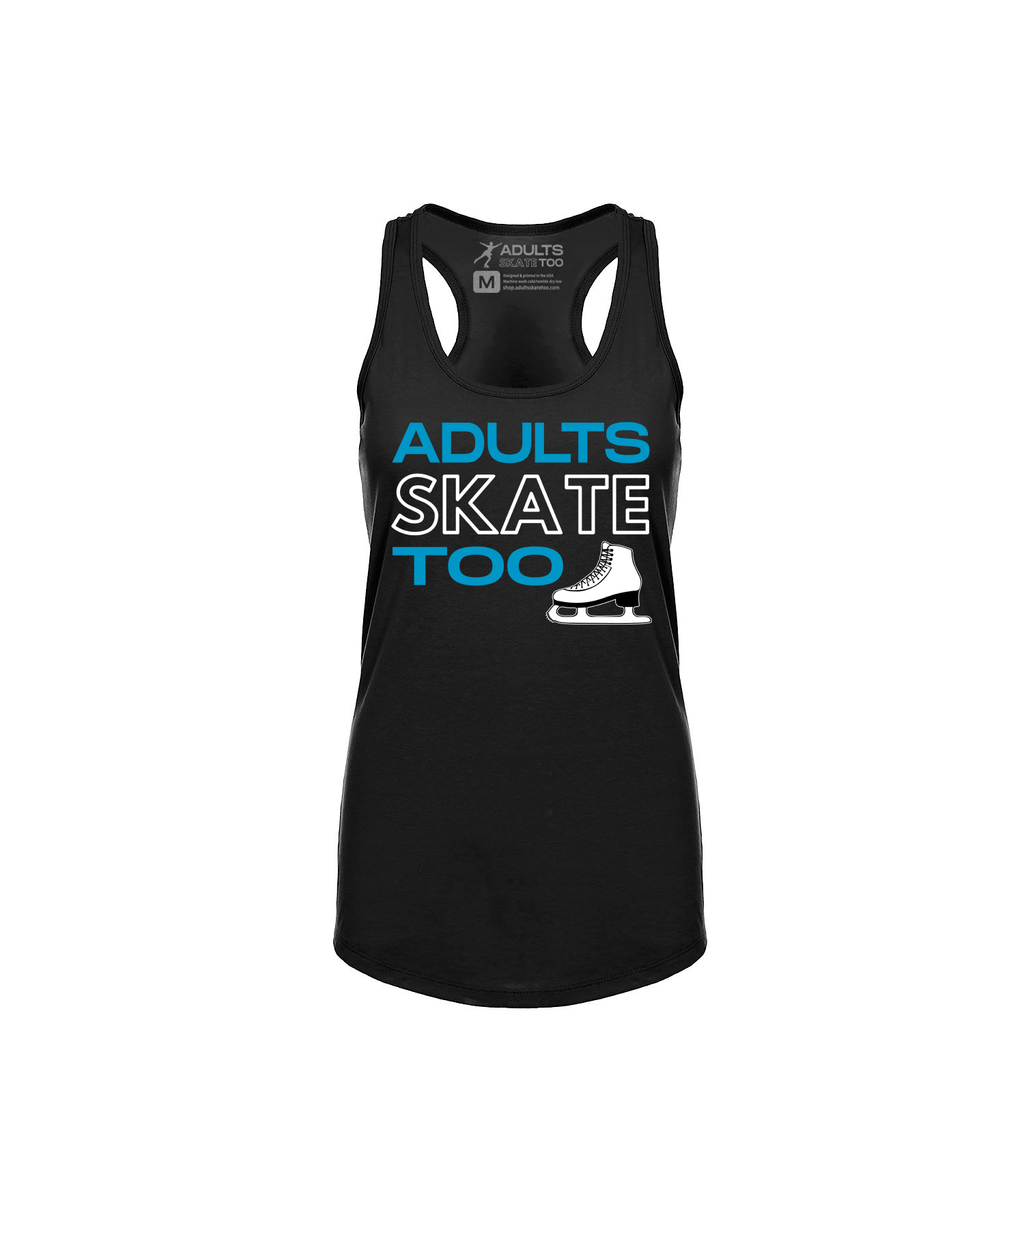 Adults Skate Too Women's Racerback Tank